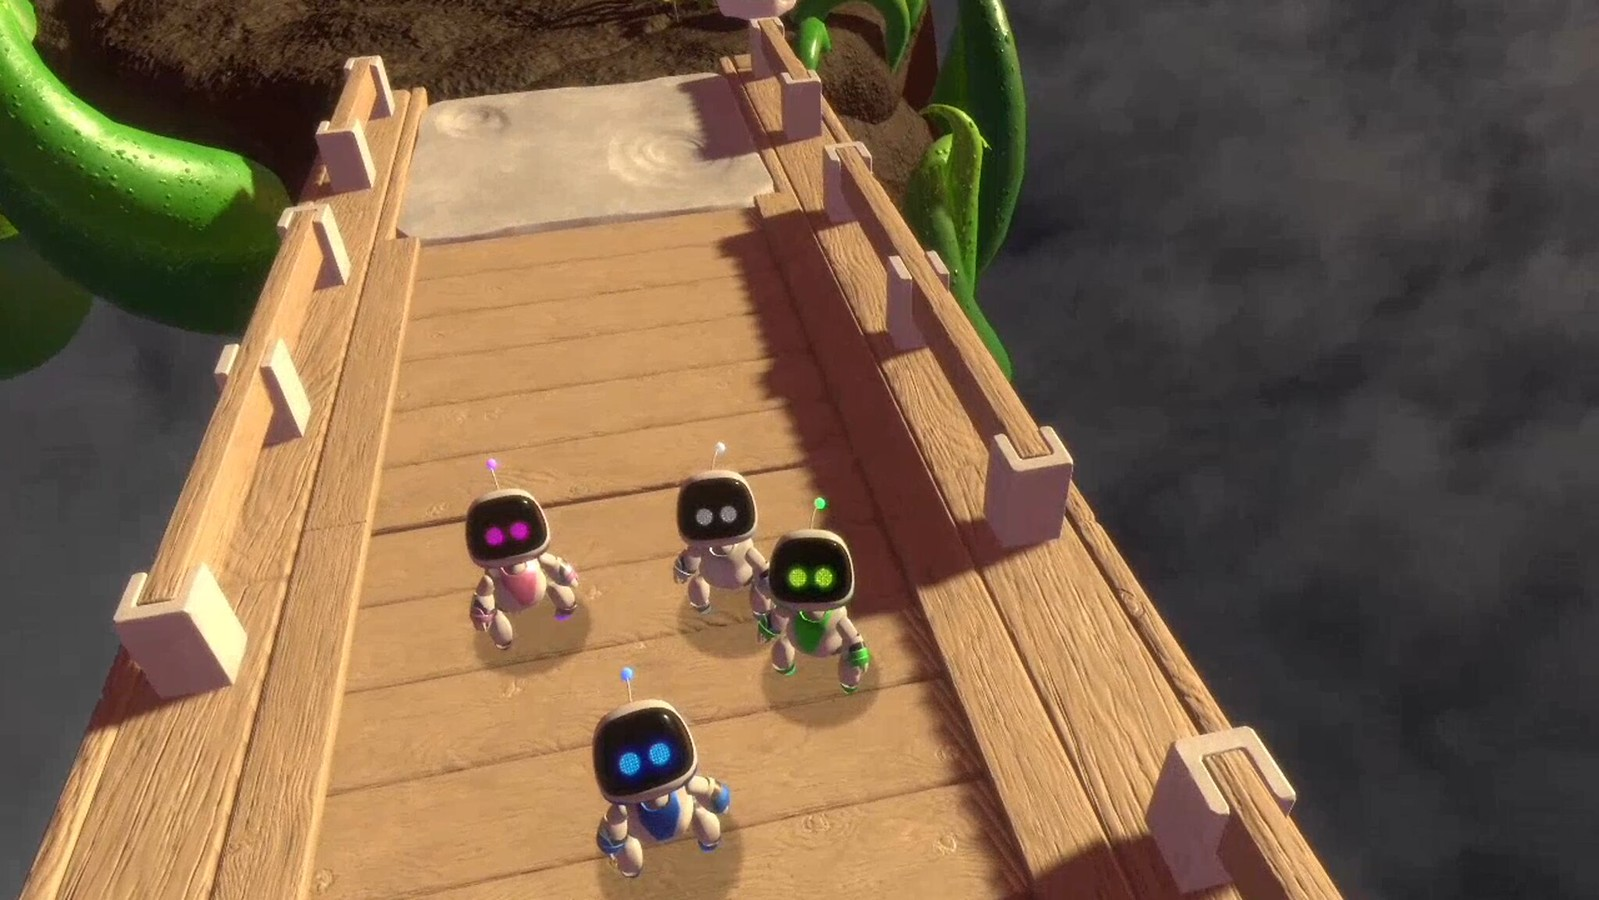 Astro Bot Rescue Mission (BTS)